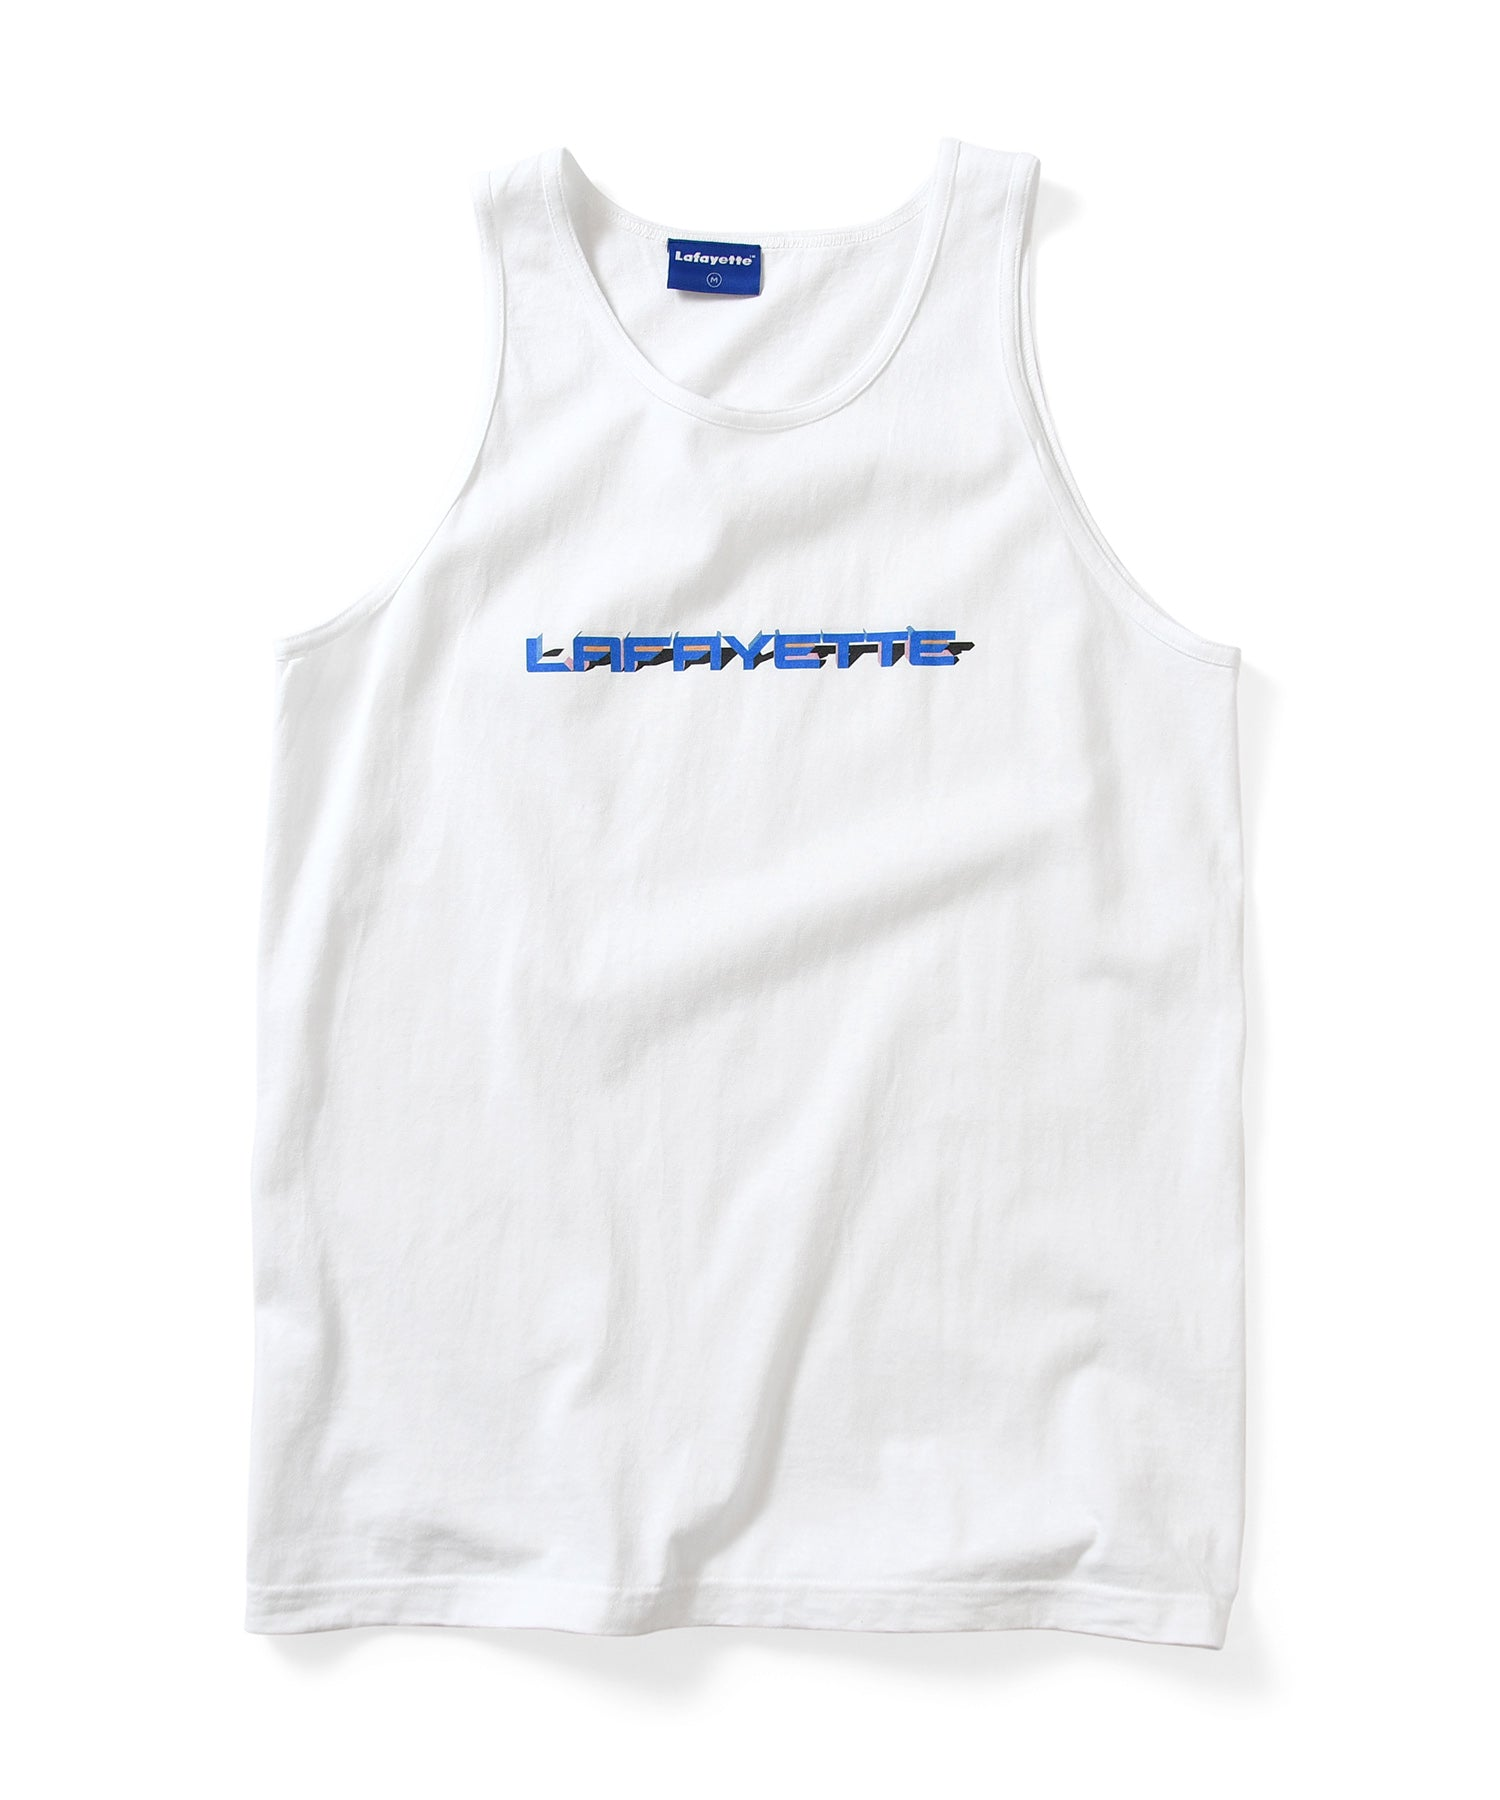 Lafayette 90S POLYGON LOGO TANK TOP LS200138 WHITE